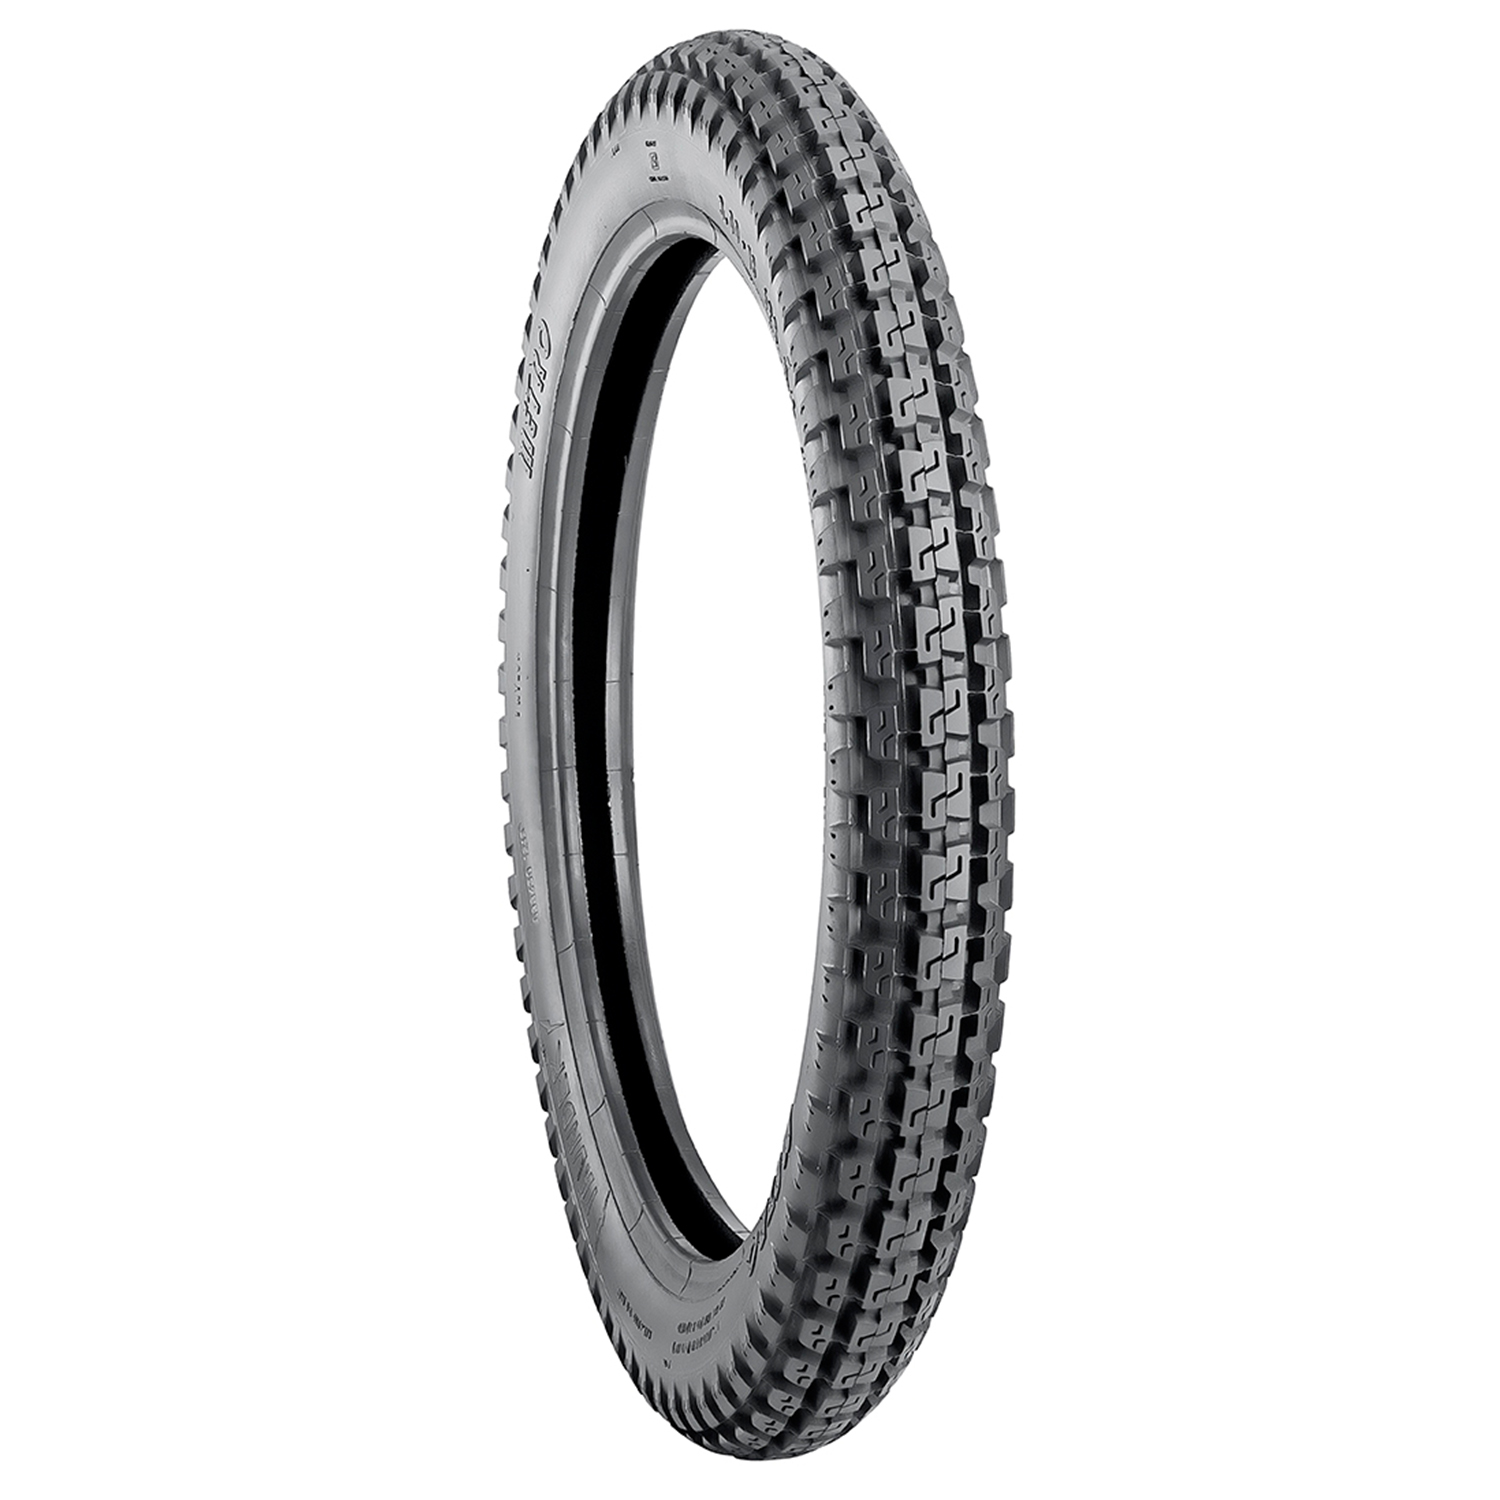 Metro METRO THUNDER 3.00 17 Requires Tube Rear Two-Wheeler Tyre